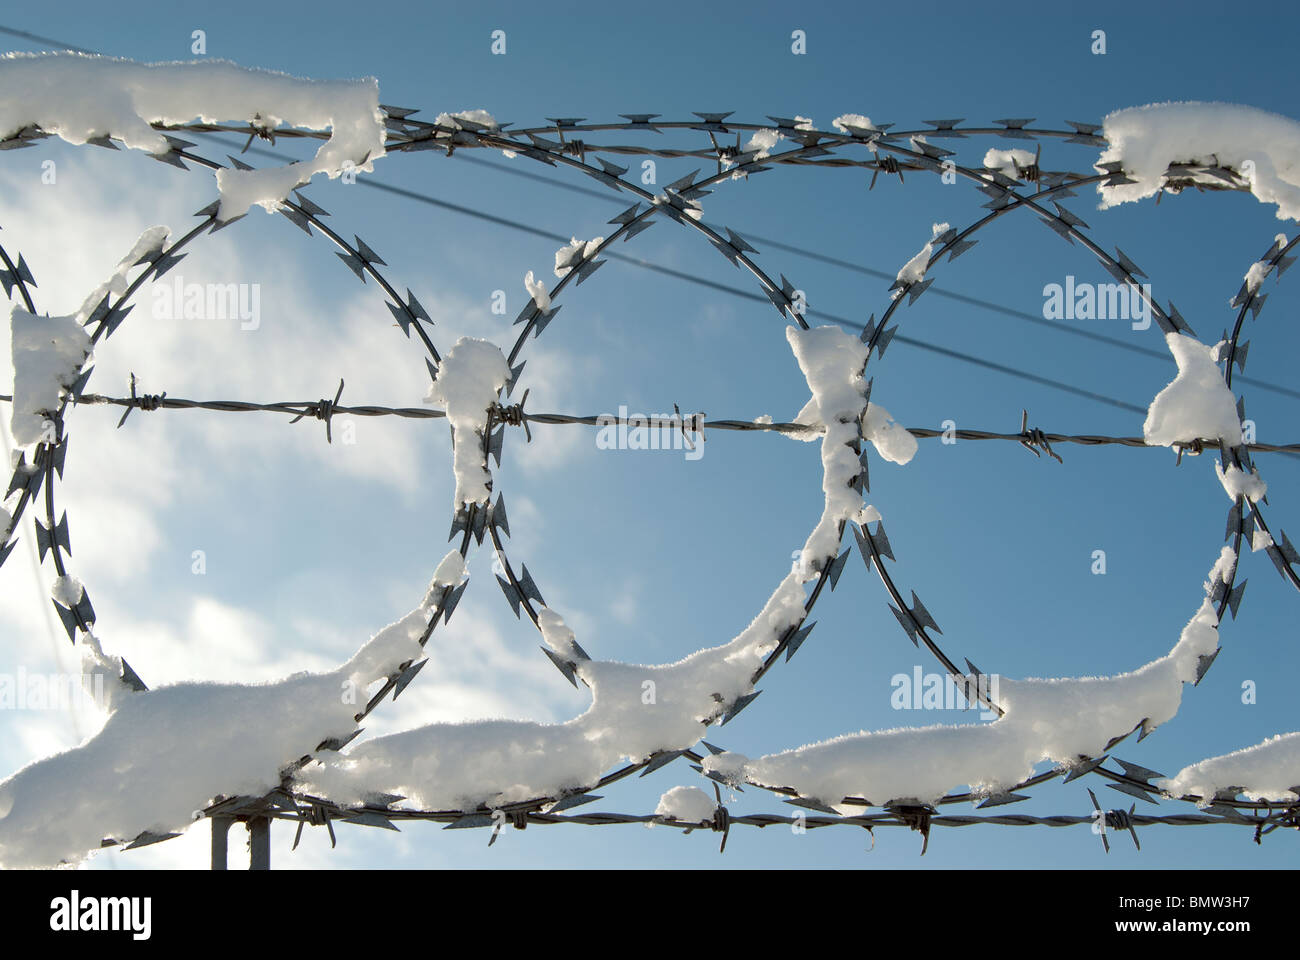 List of Synonyms and Antonyms of the Word: razorwire